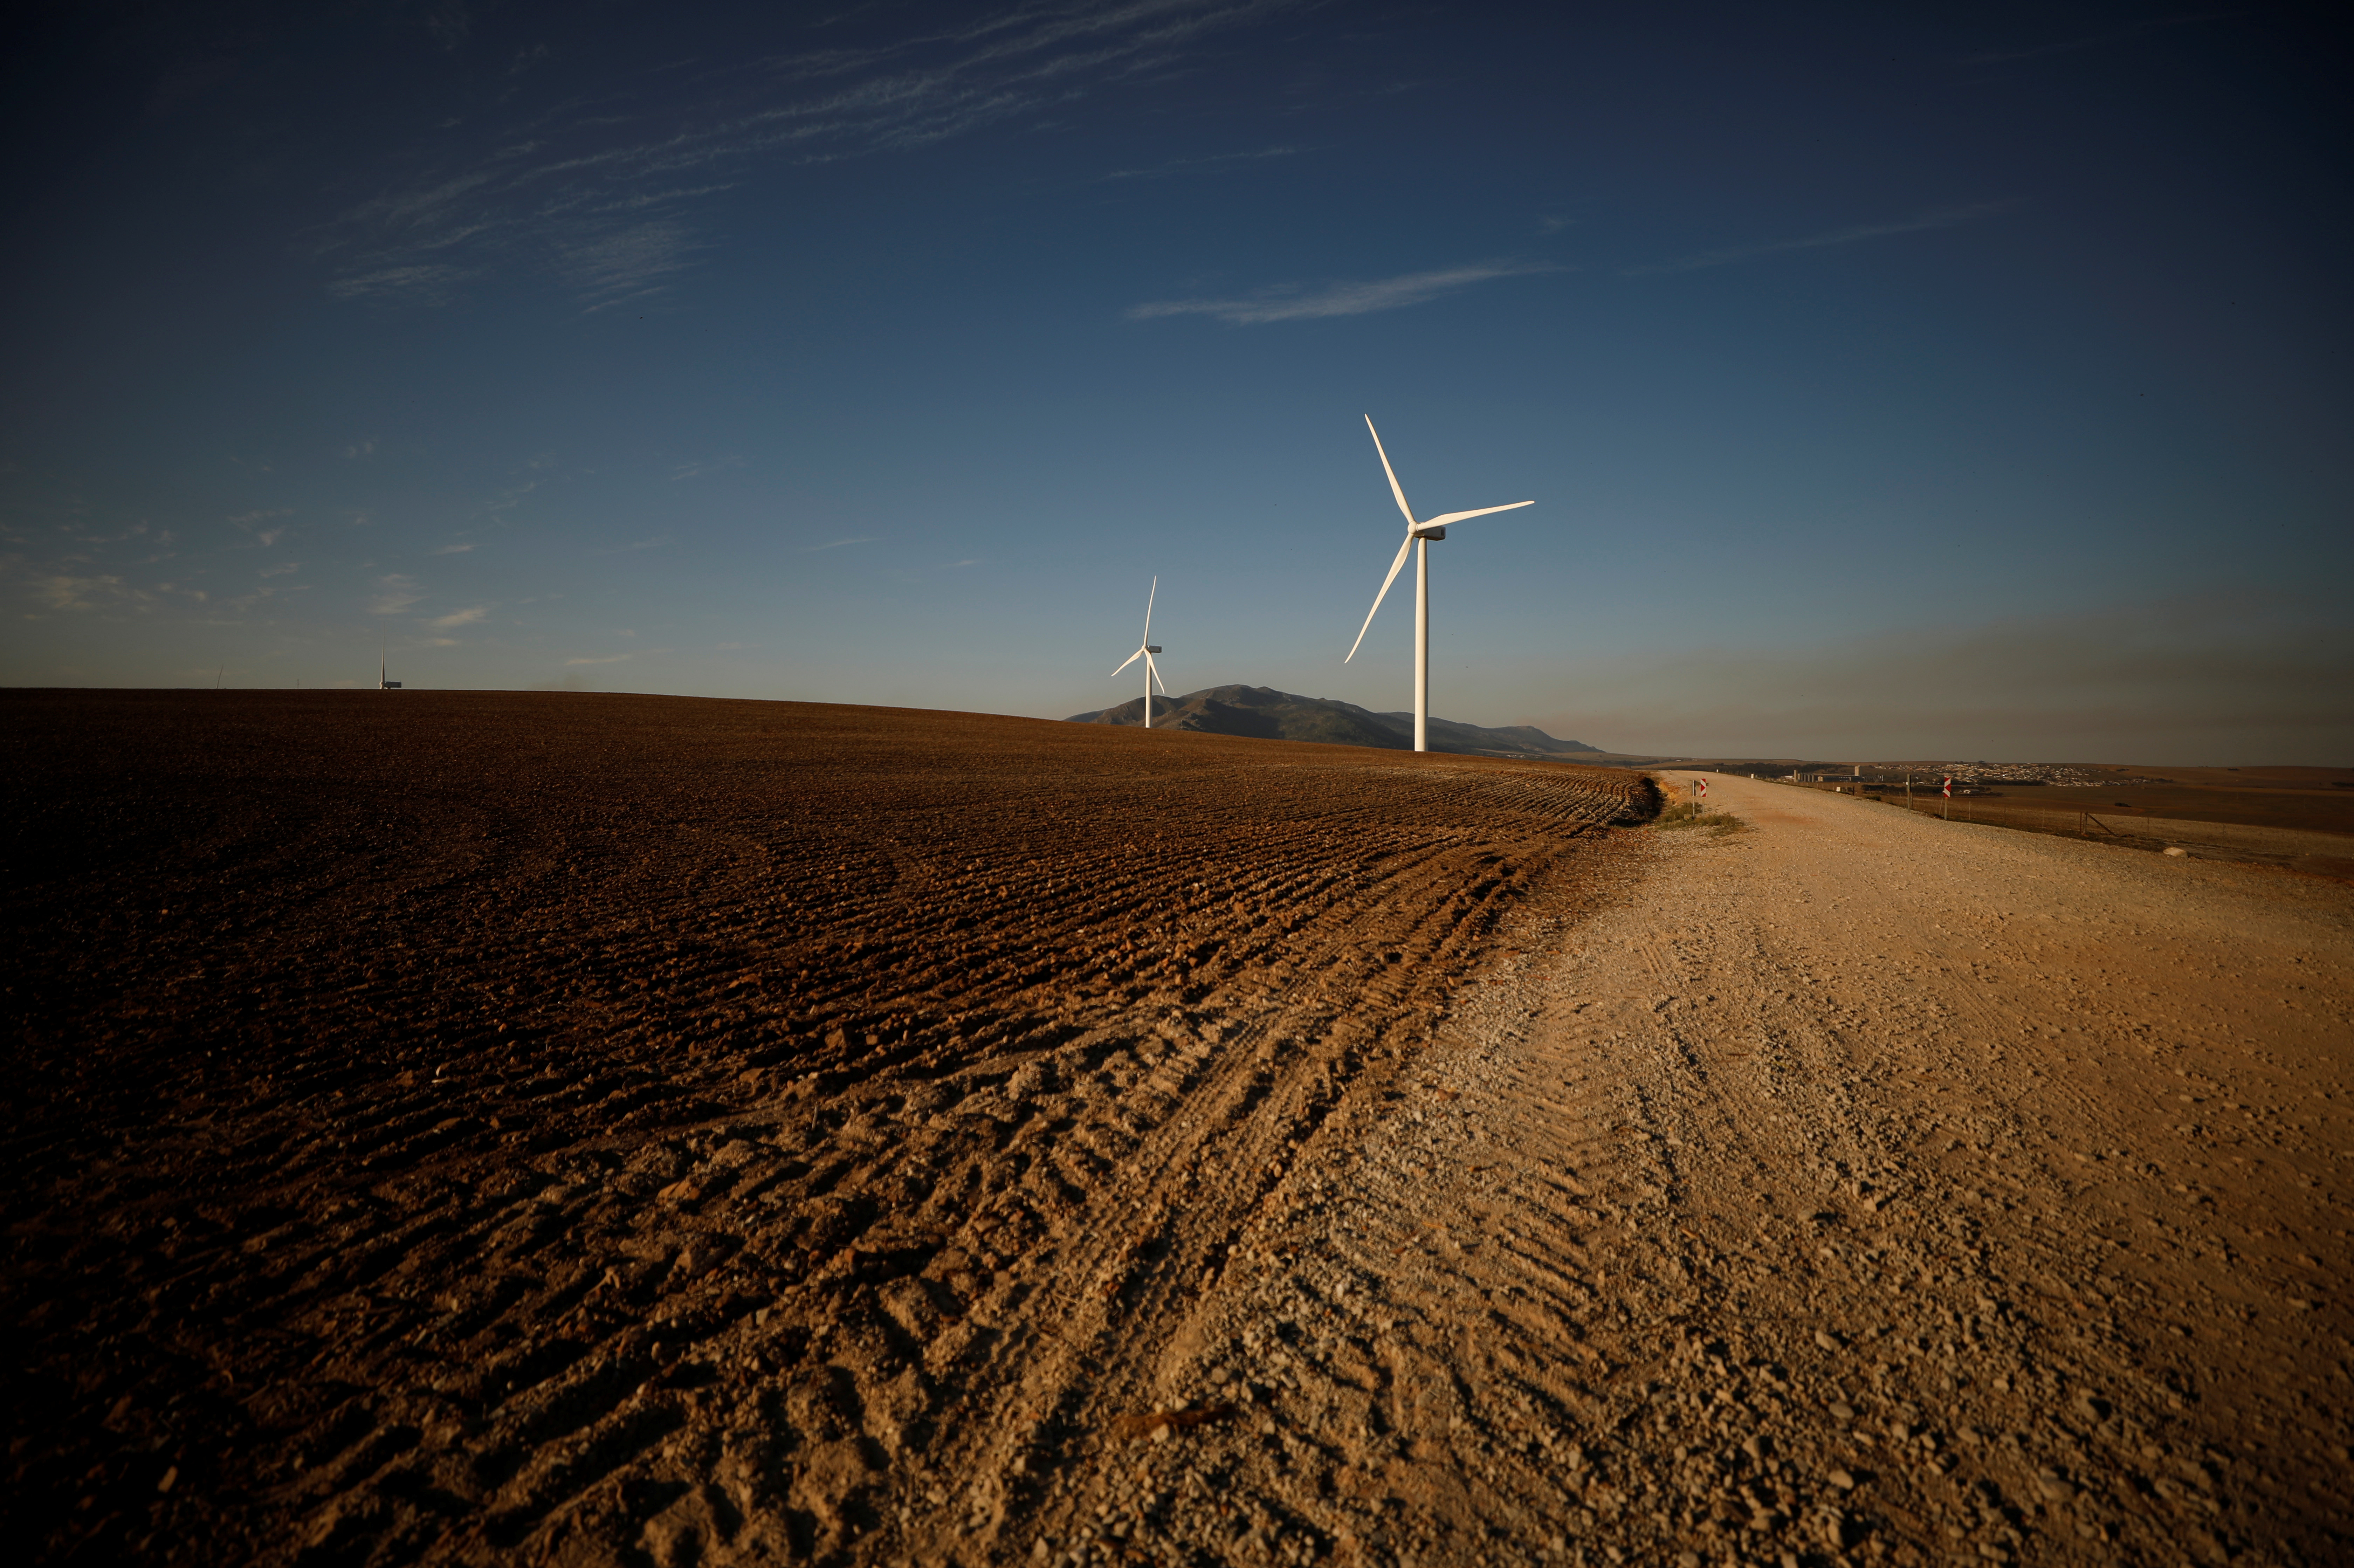 Wind turbines produce renewable energy outside Caledon, South Africa, May 20, 2020. Picture taken May 20, 2020. REUTERS/Mike Hutchings - RC272H90E73R